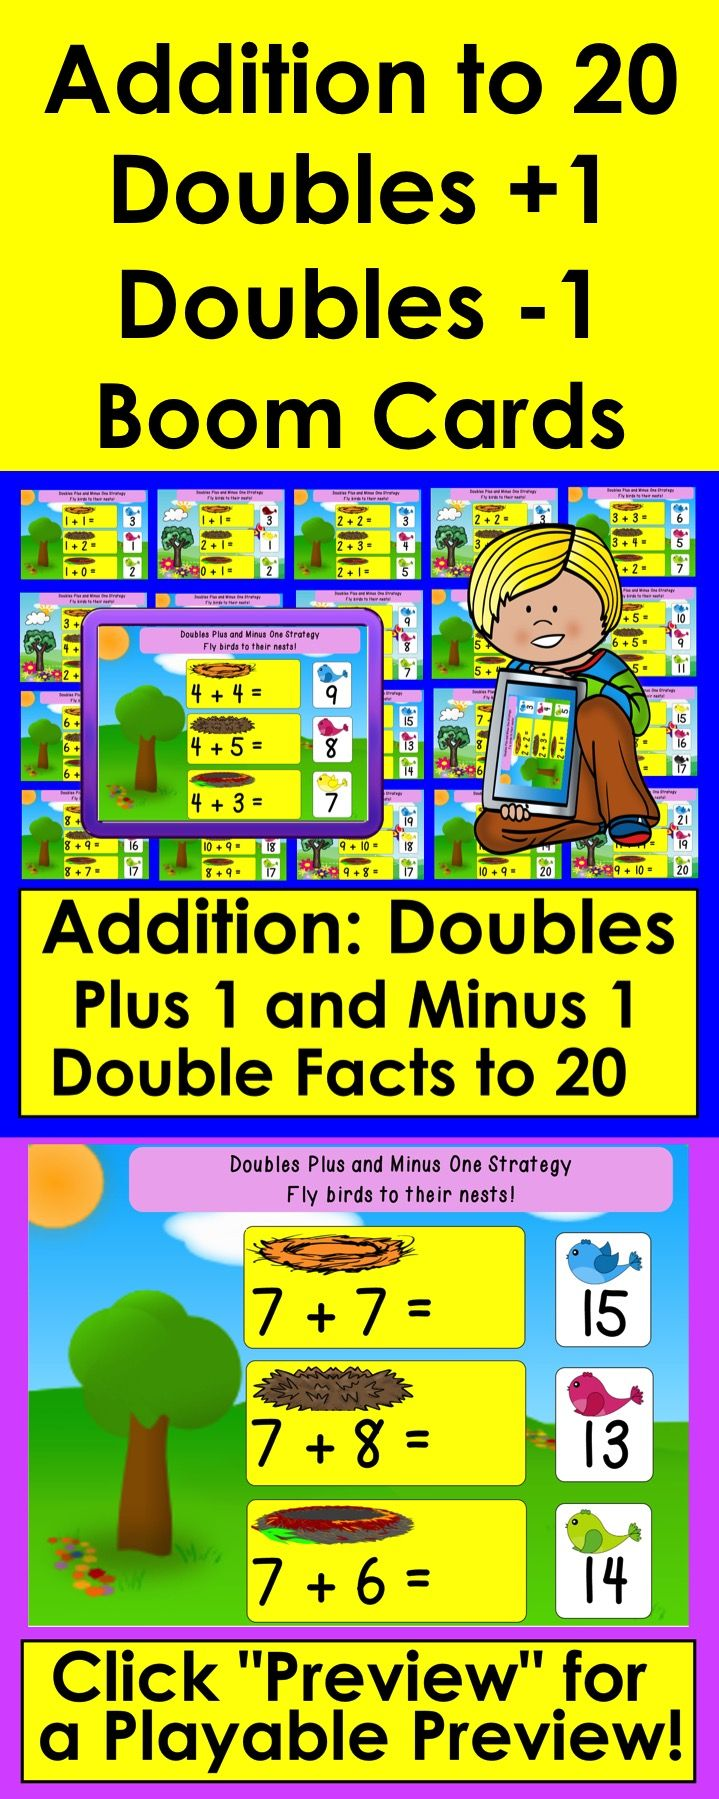 Addition To 20 Doubles Plus One Strategy With Animated Flying Birds Feedback For Students Kids Learning Activities Math Addition Doubles plus one addition facts